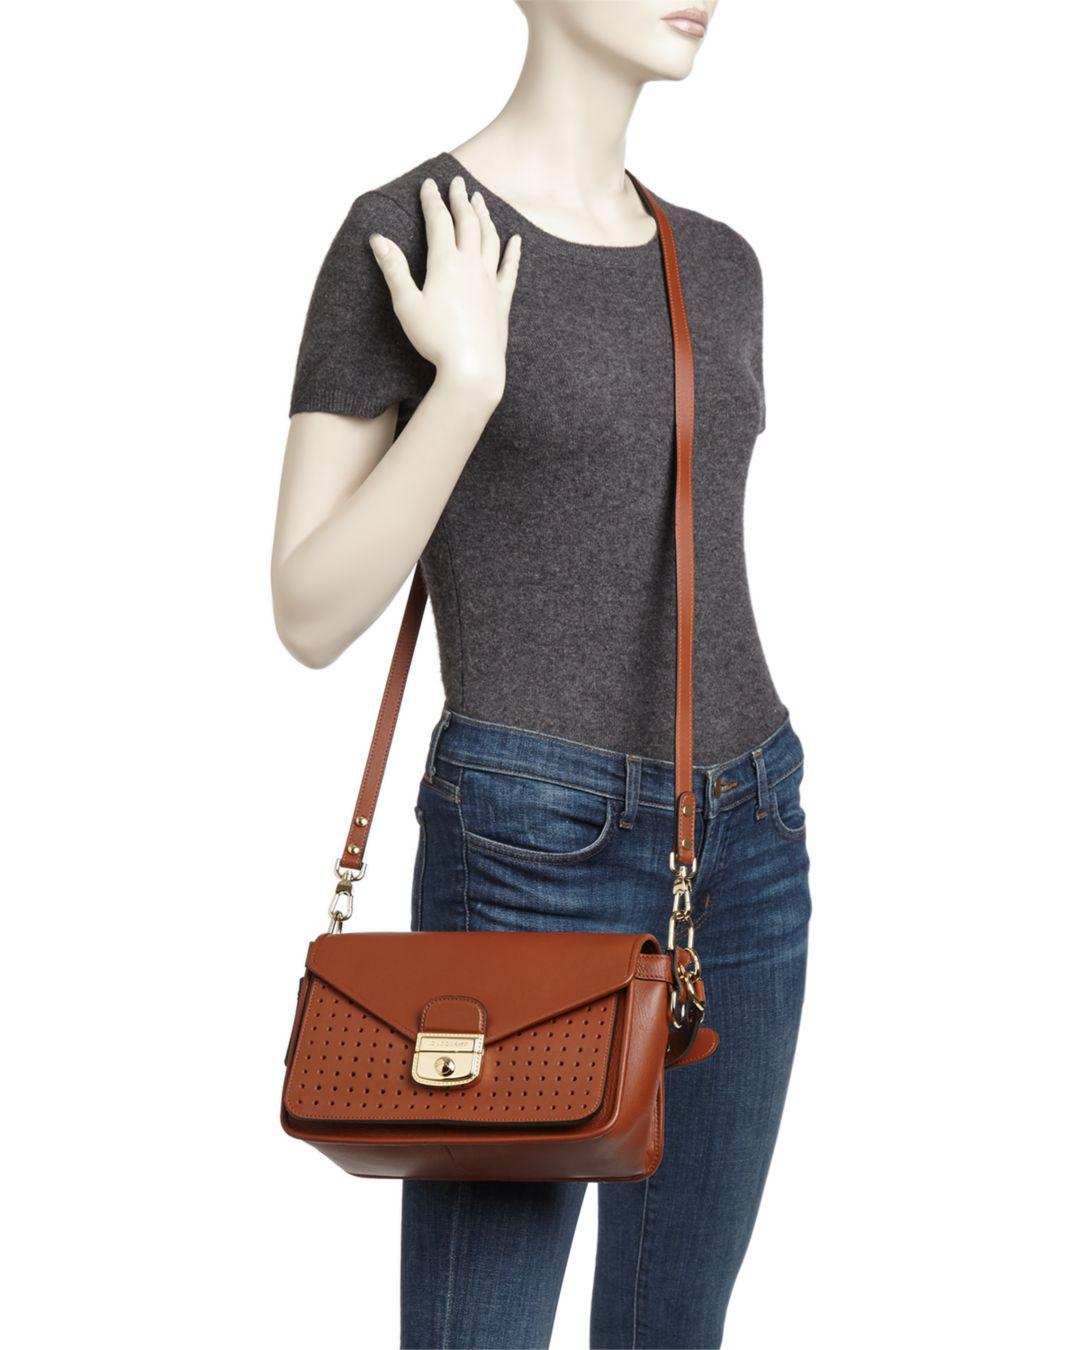 338343f15baa Lyst - Longchamp Mademoiselle Medium Crossbody in Brown - Save 18%